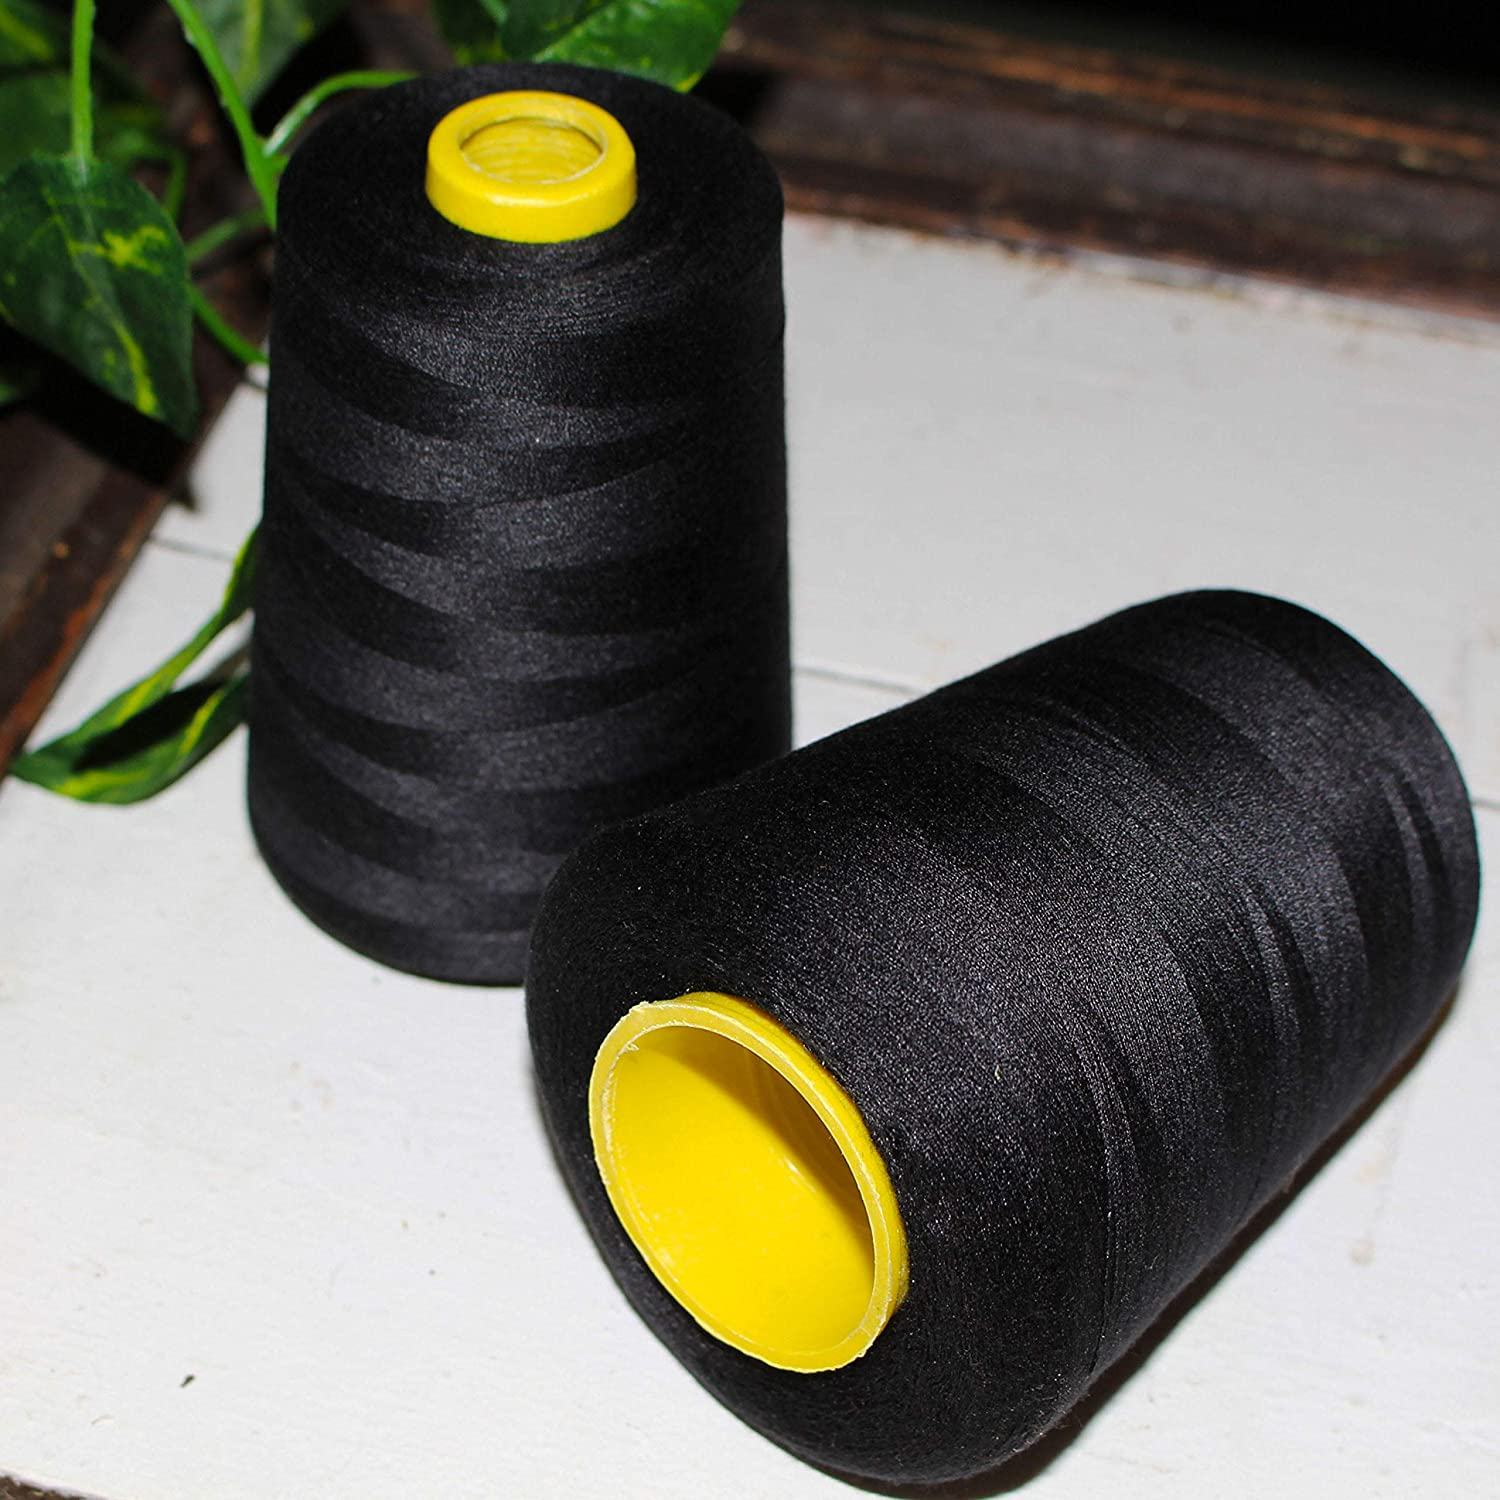 4 x 4572 metre Overlocker Thread Black Sewing Machine Polyester Thread High Quality Spool Perfect for Hand and Machine Cross Stitch Threads for Embroidery Sewing Thread Quilting and Upholstery